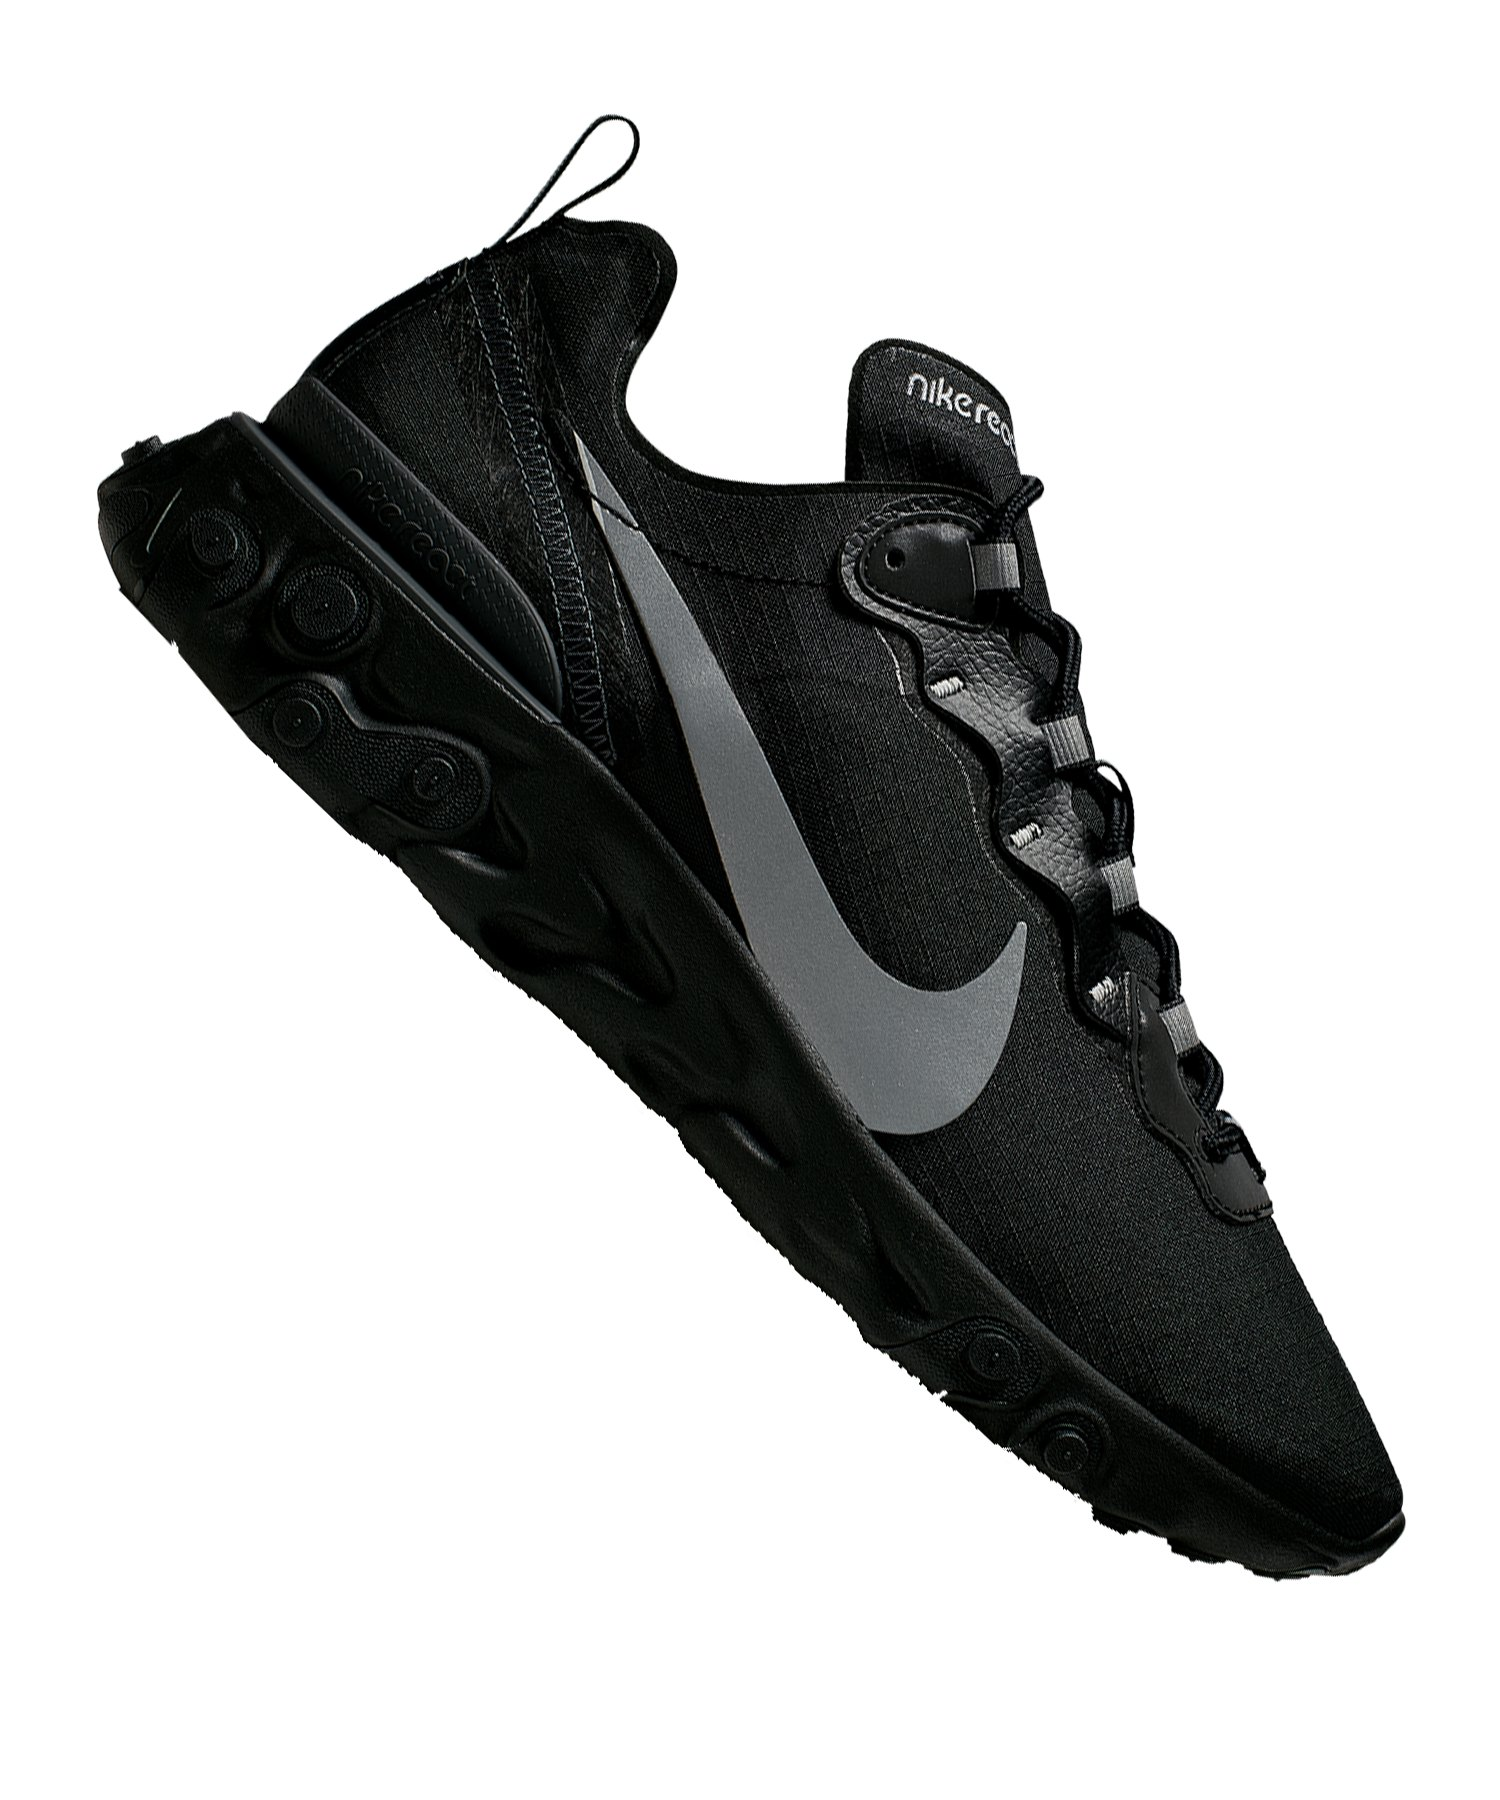 herren schuhe element 55 nike react wXn0kPN8ZO